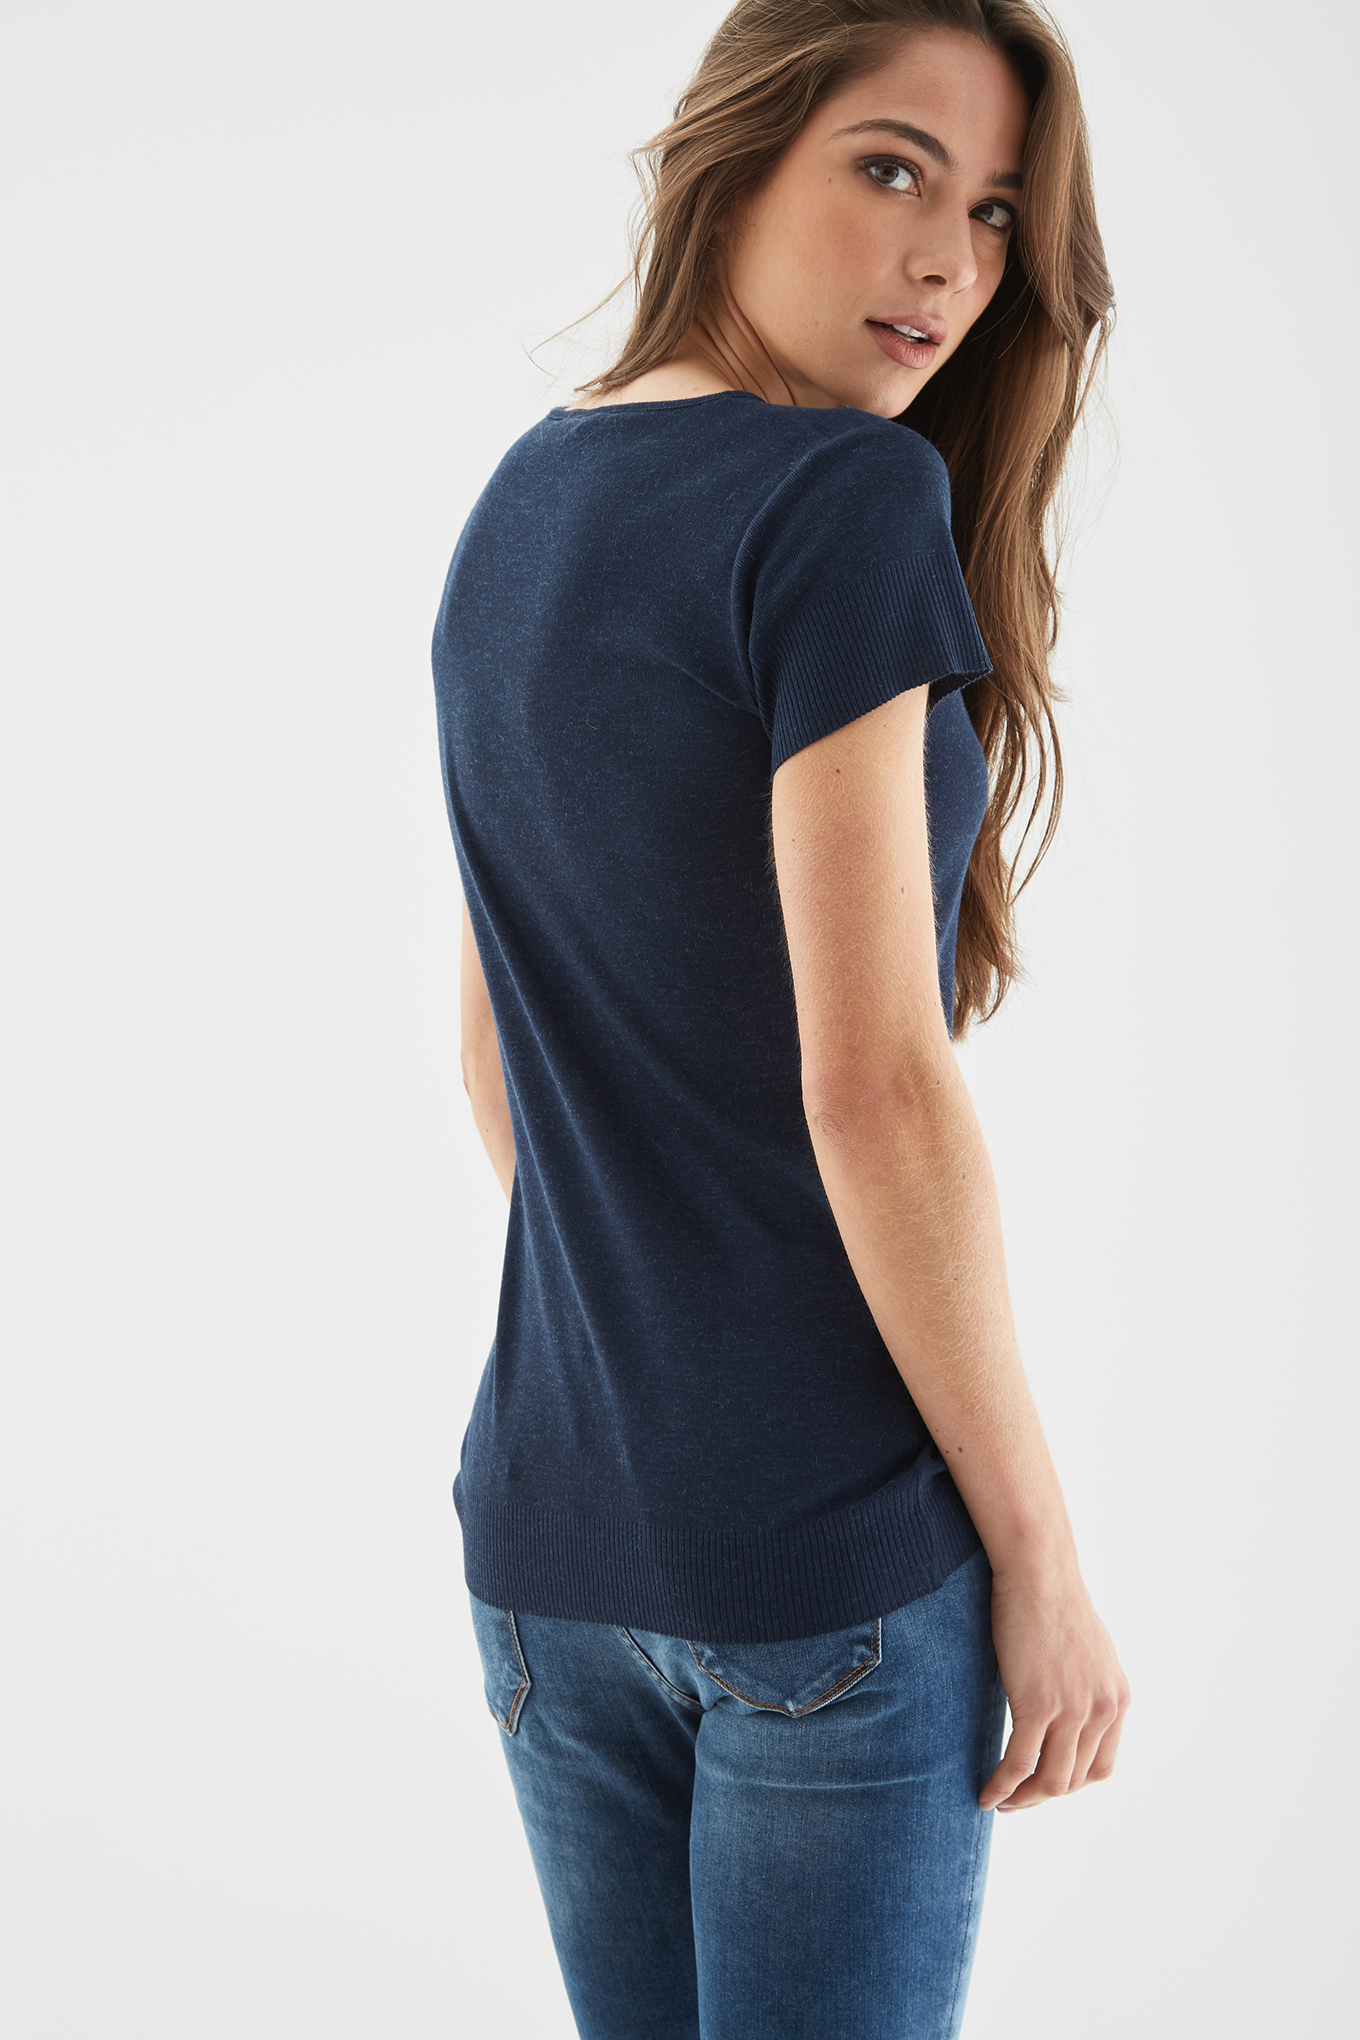 T-Shirt Azul Escuro Casual Mulher